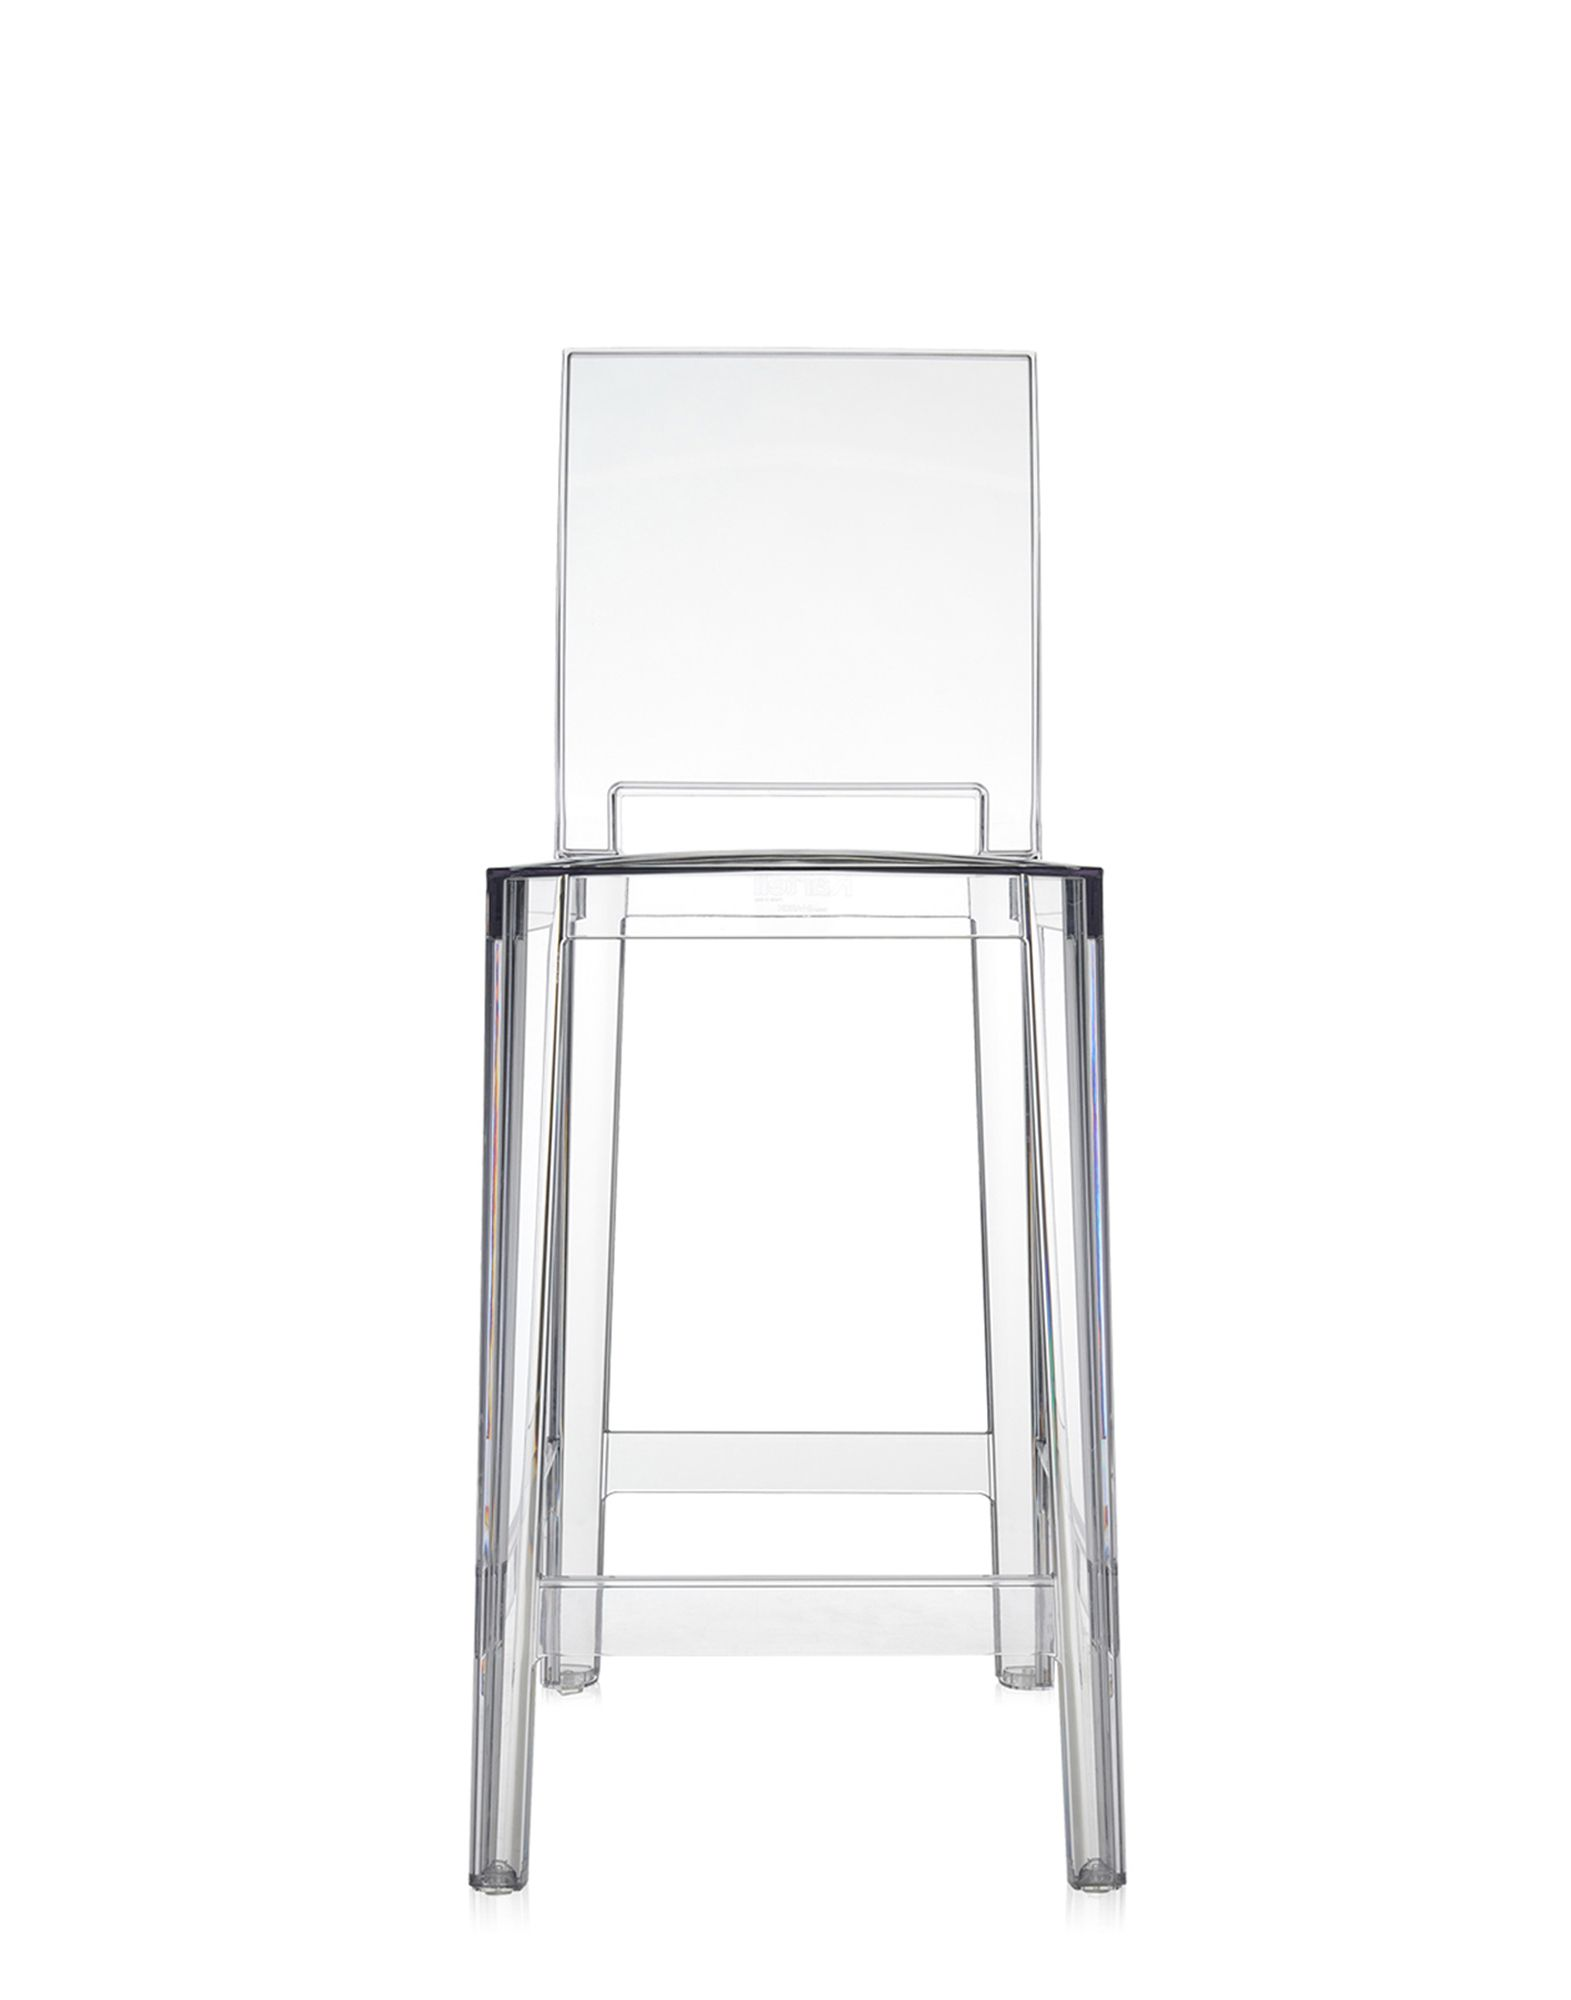 Kartell sgabello one more please cristallo newformsdesign - Kartell sgabelli cucina ...